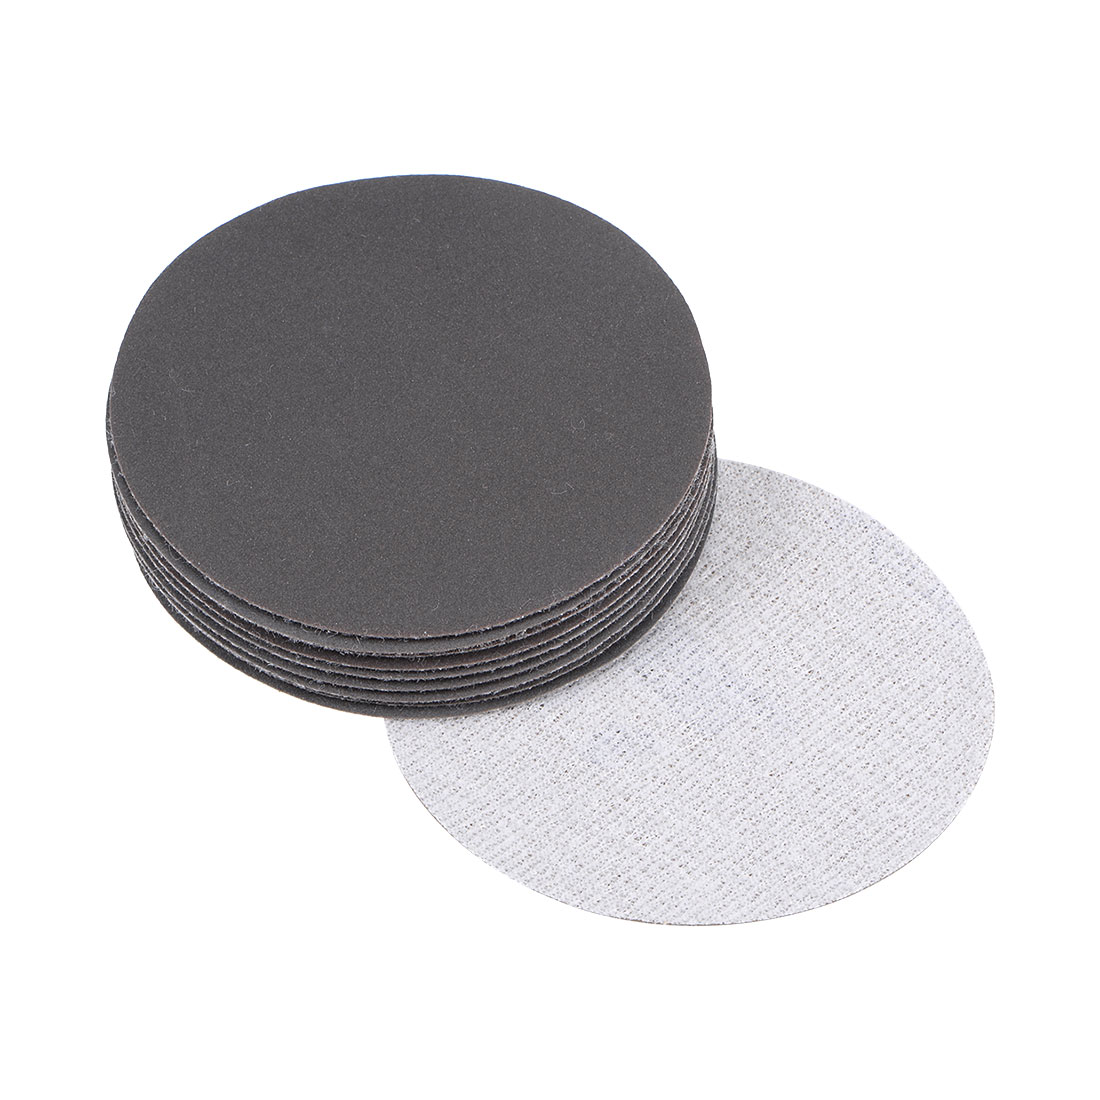 3 inch Wet Dry Discs 600 Grit Hook and Loop Sanding Disc Silicon Carbide 10pcs